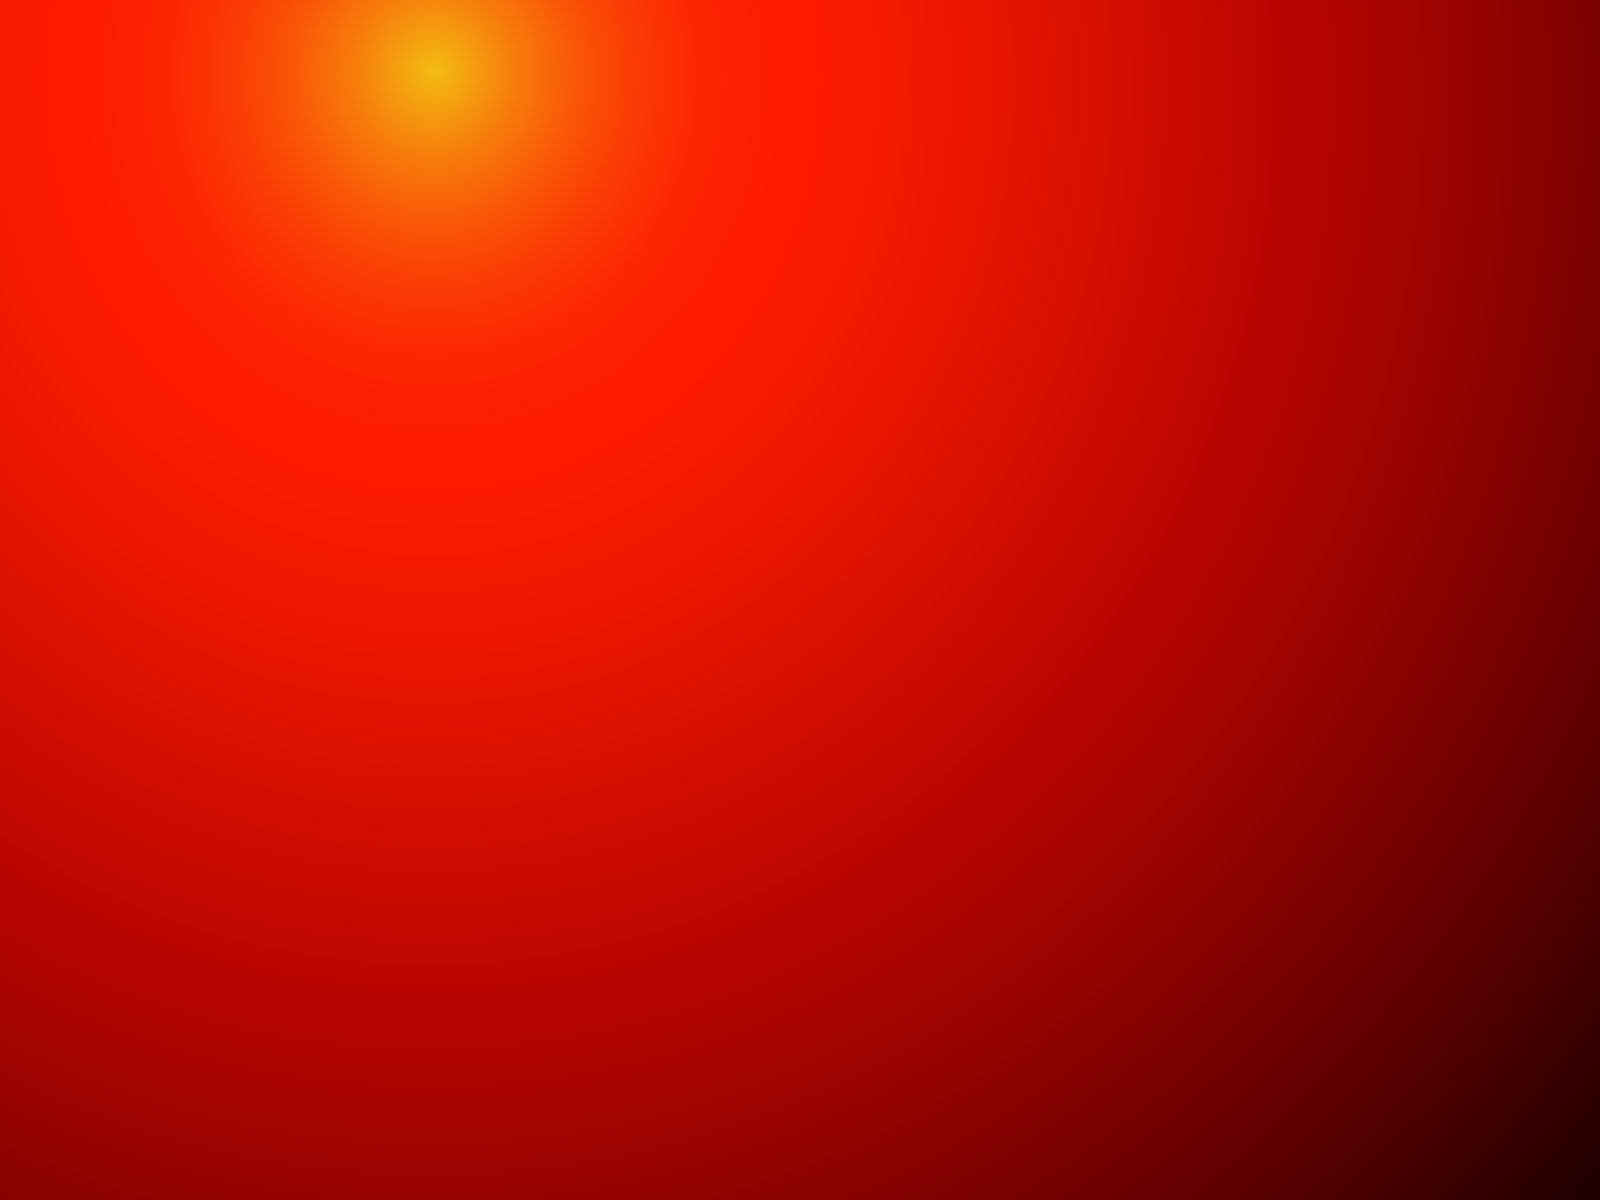 The Best Top Desktop Red Wallpapers Red Wallpaper Red Background Hd